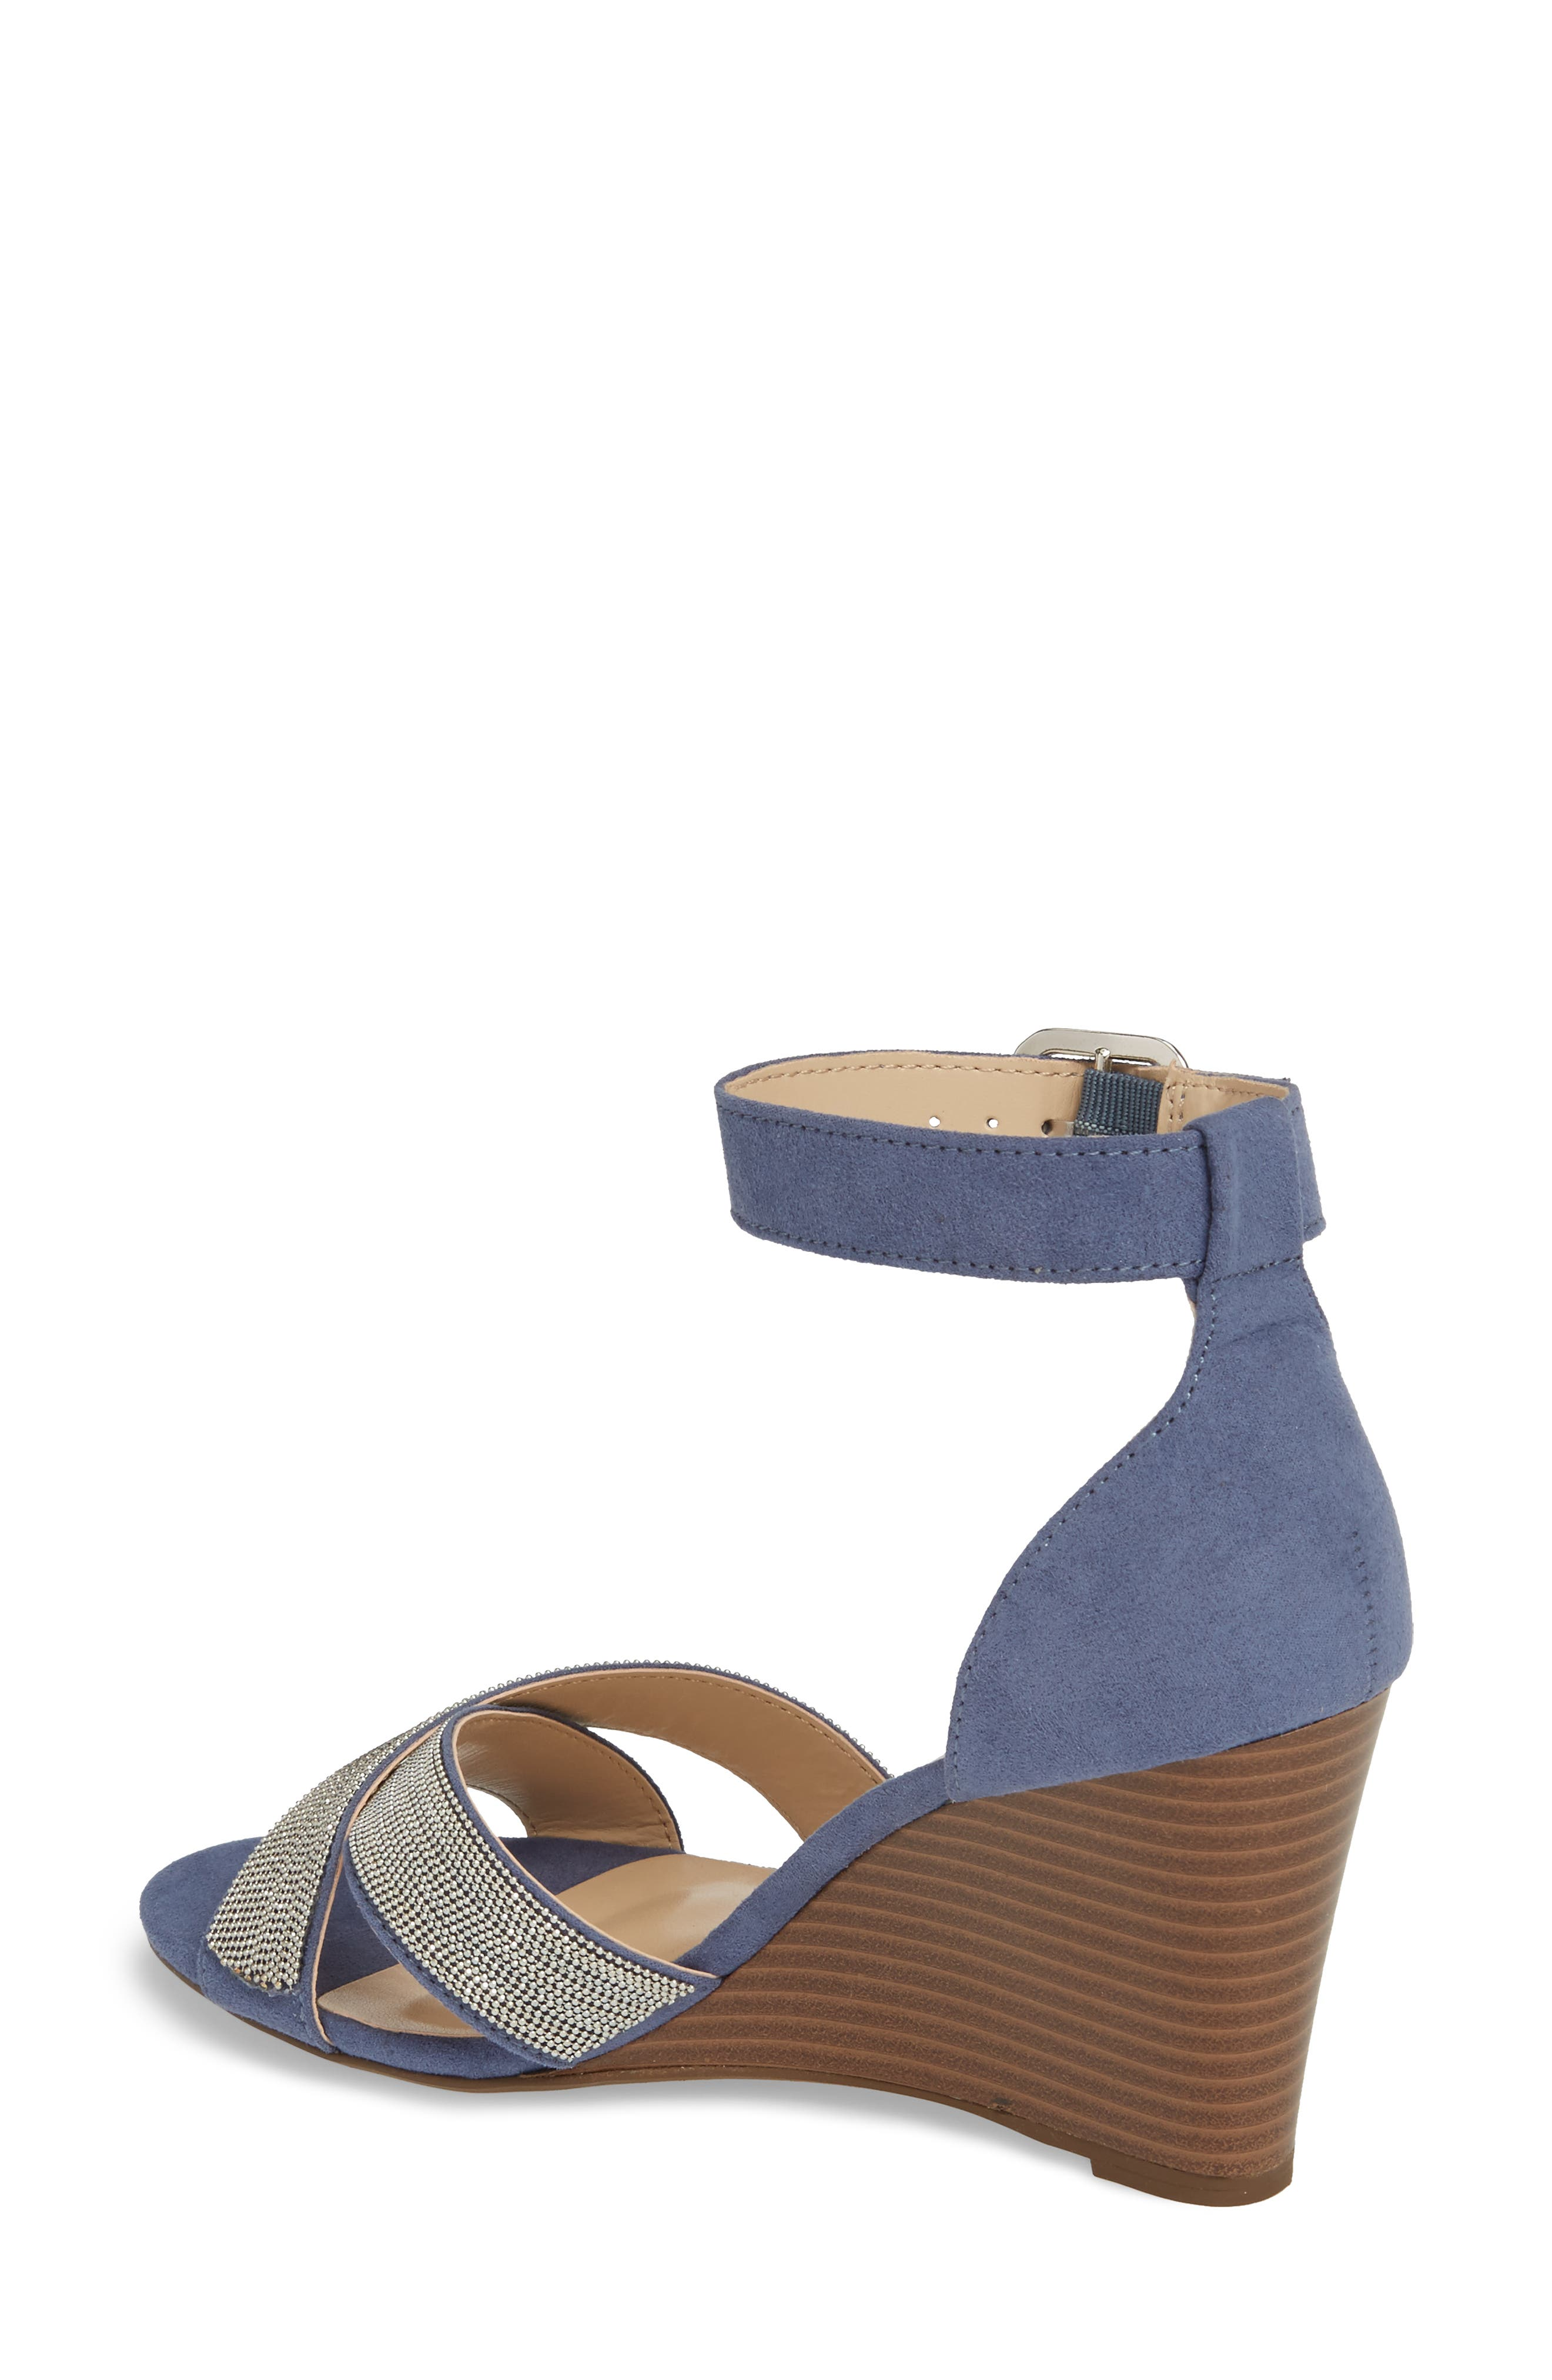 Zorra Wedge Sandal,                             Alternate thumbnail 2, color,                             Blue Suede